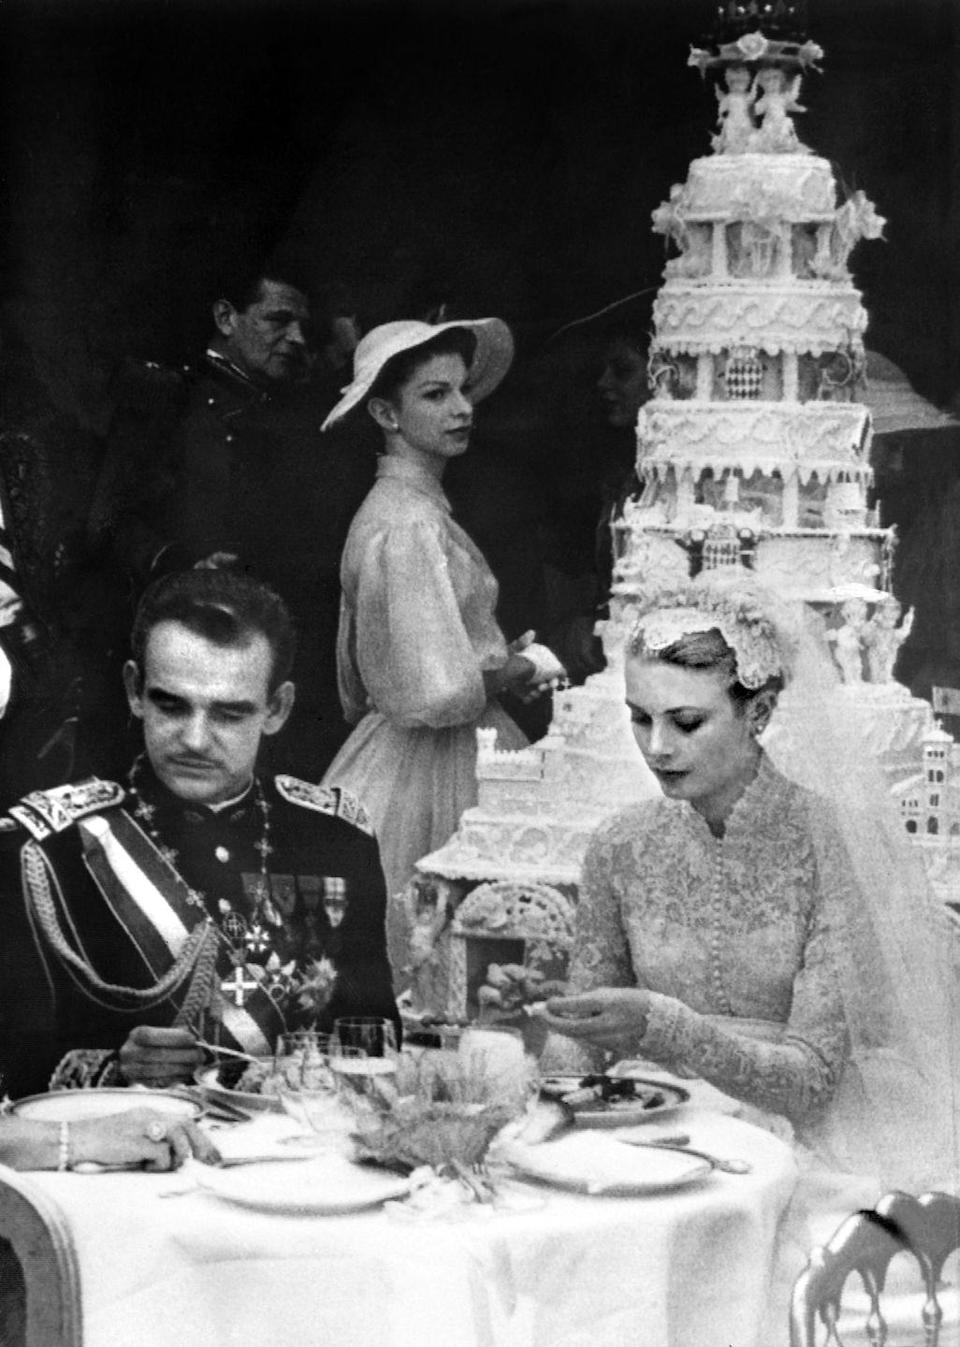 <p>Grace Kelly bid farewell to her Hollywood career and gained the title of Princess when she married Prince Rainier of Monaco. Here, they eat at their reception in 1956. </p>